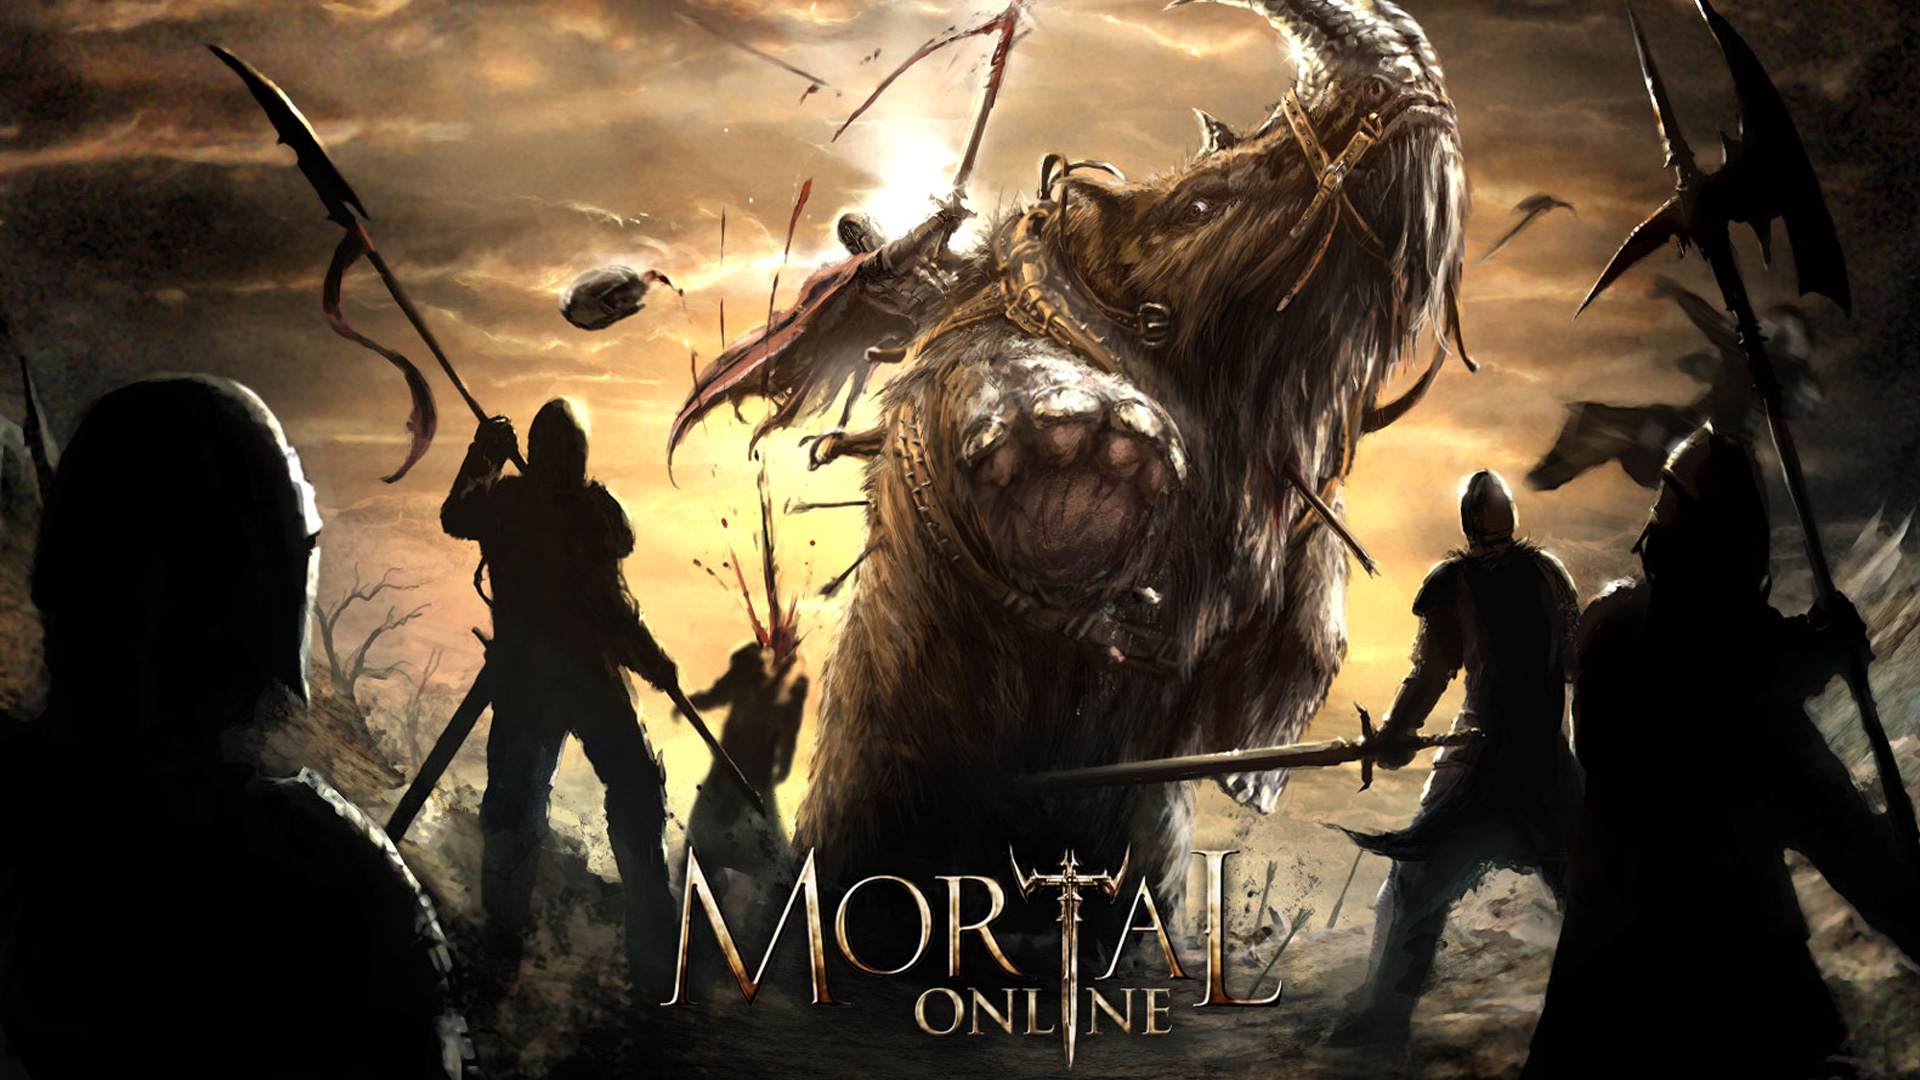 Free Mortal Online Wallpaper in 1920x1080